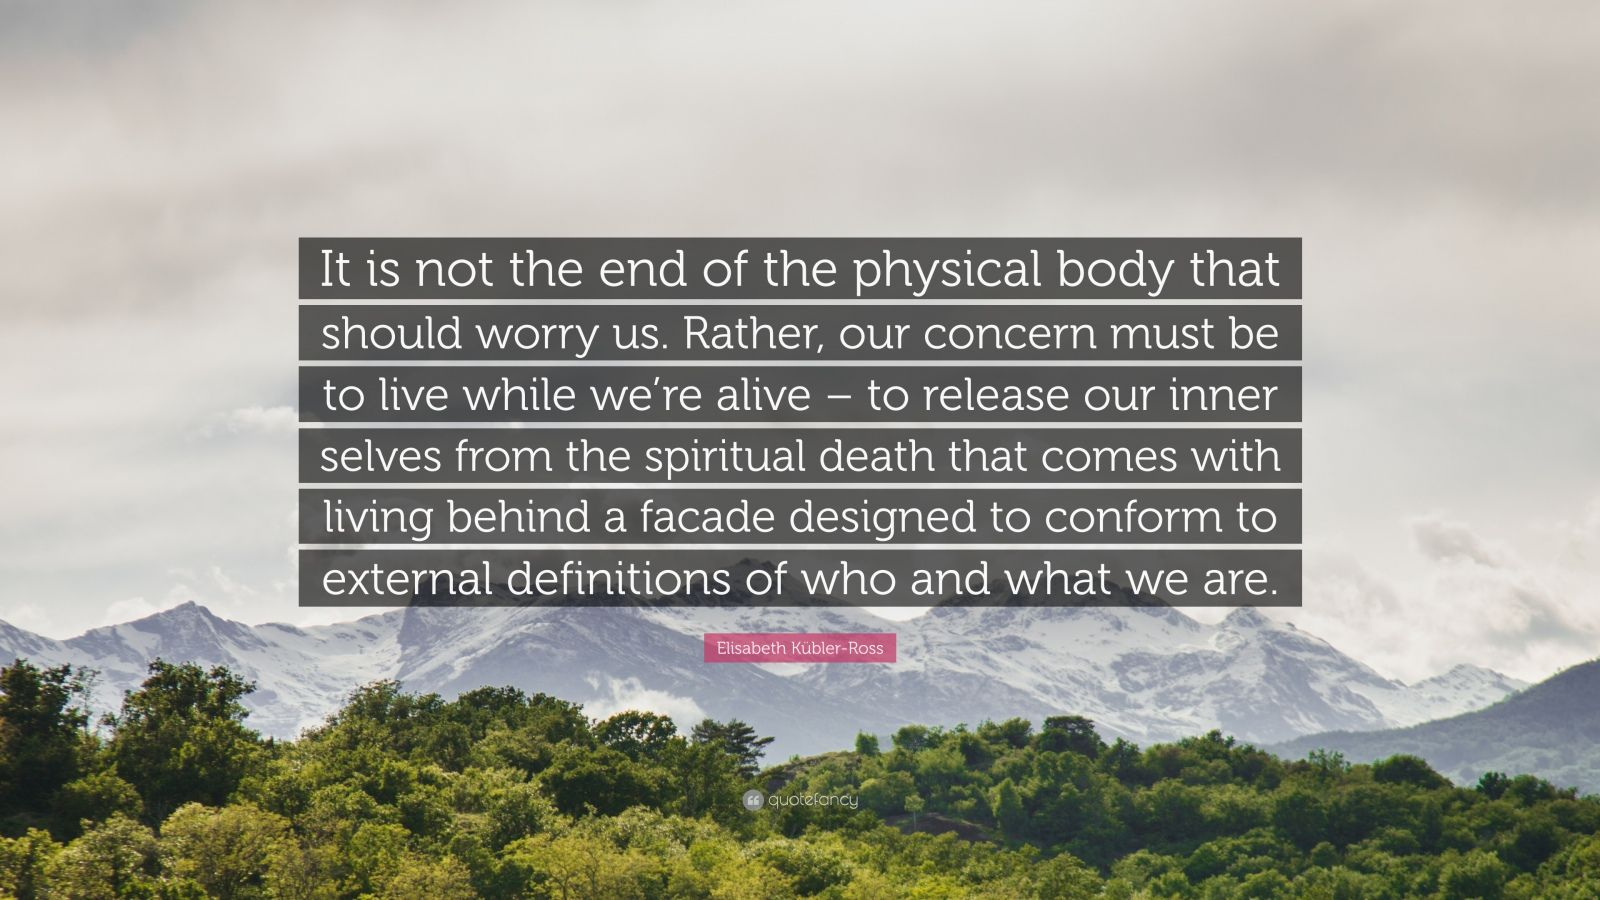 """Elisabeth Kübler-Ross Quote: """"It is not the end of the physical body that should worry us. Rather, our concern must be to live while we're alive – to release our inner selves from the spiritual death that comes with living behind a facade designed to conform to external definitions of who and what we are."""""""